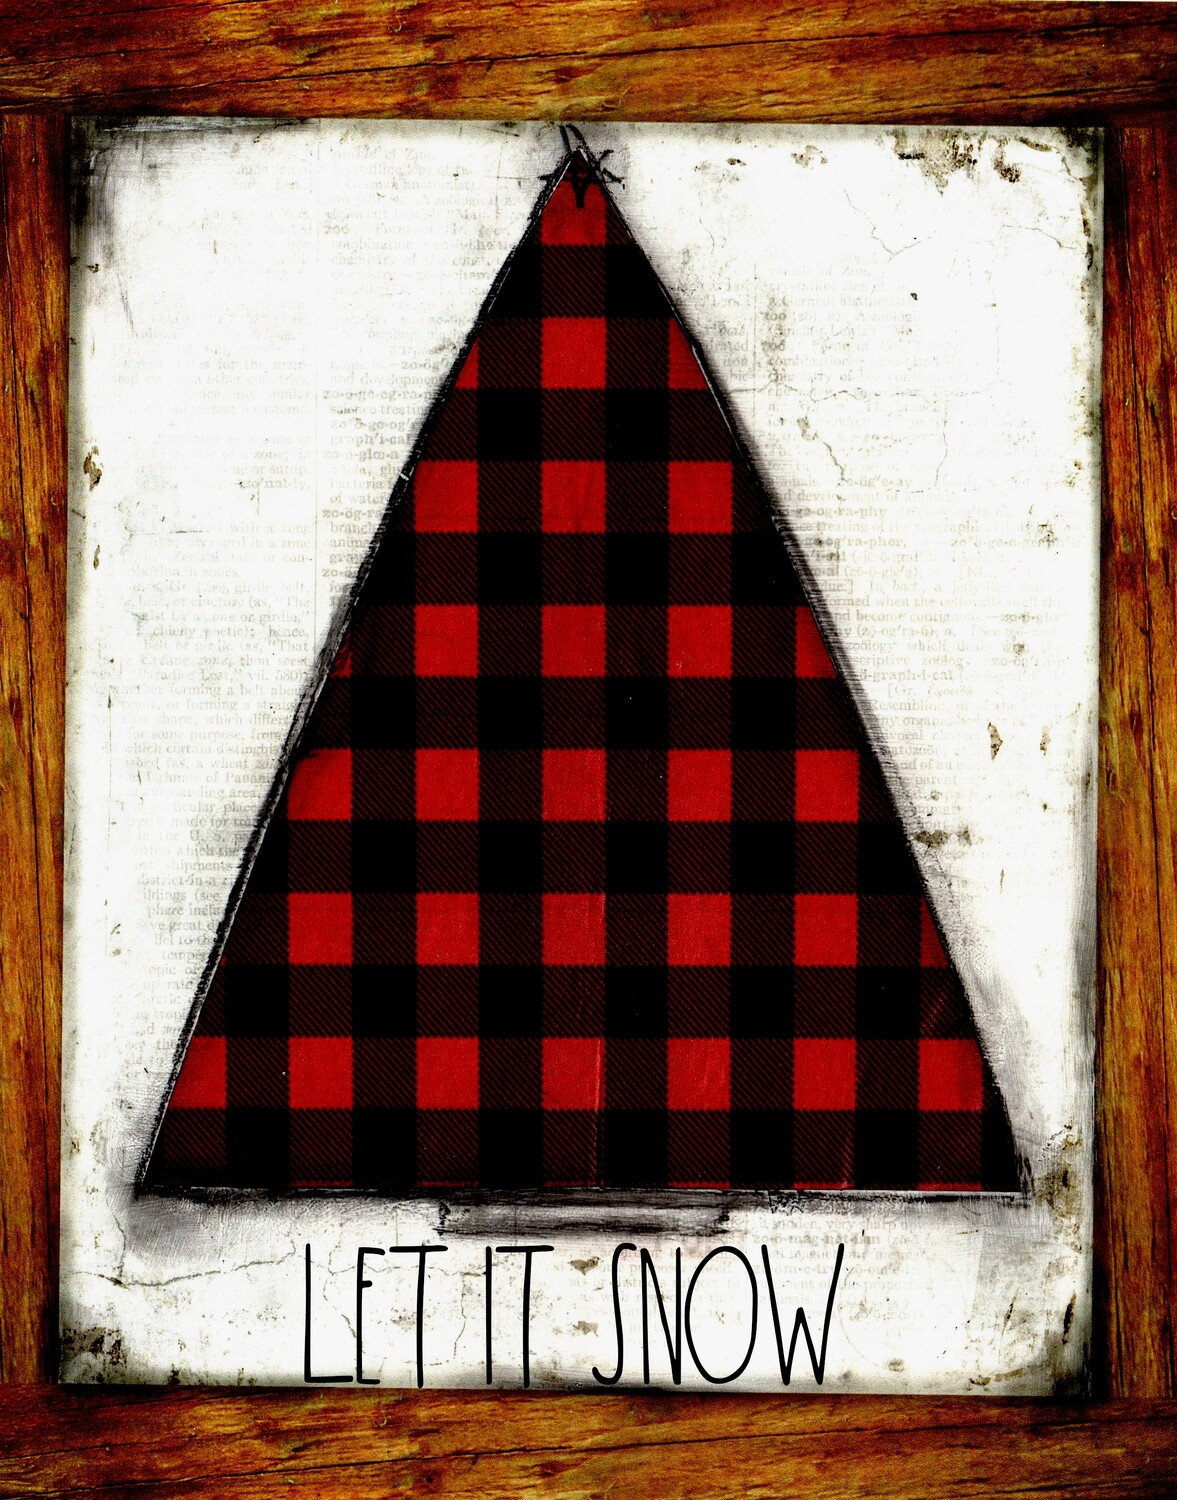 """Let It Snow"" Christmas tree plaid Print on Wood 8x10 Overstock"